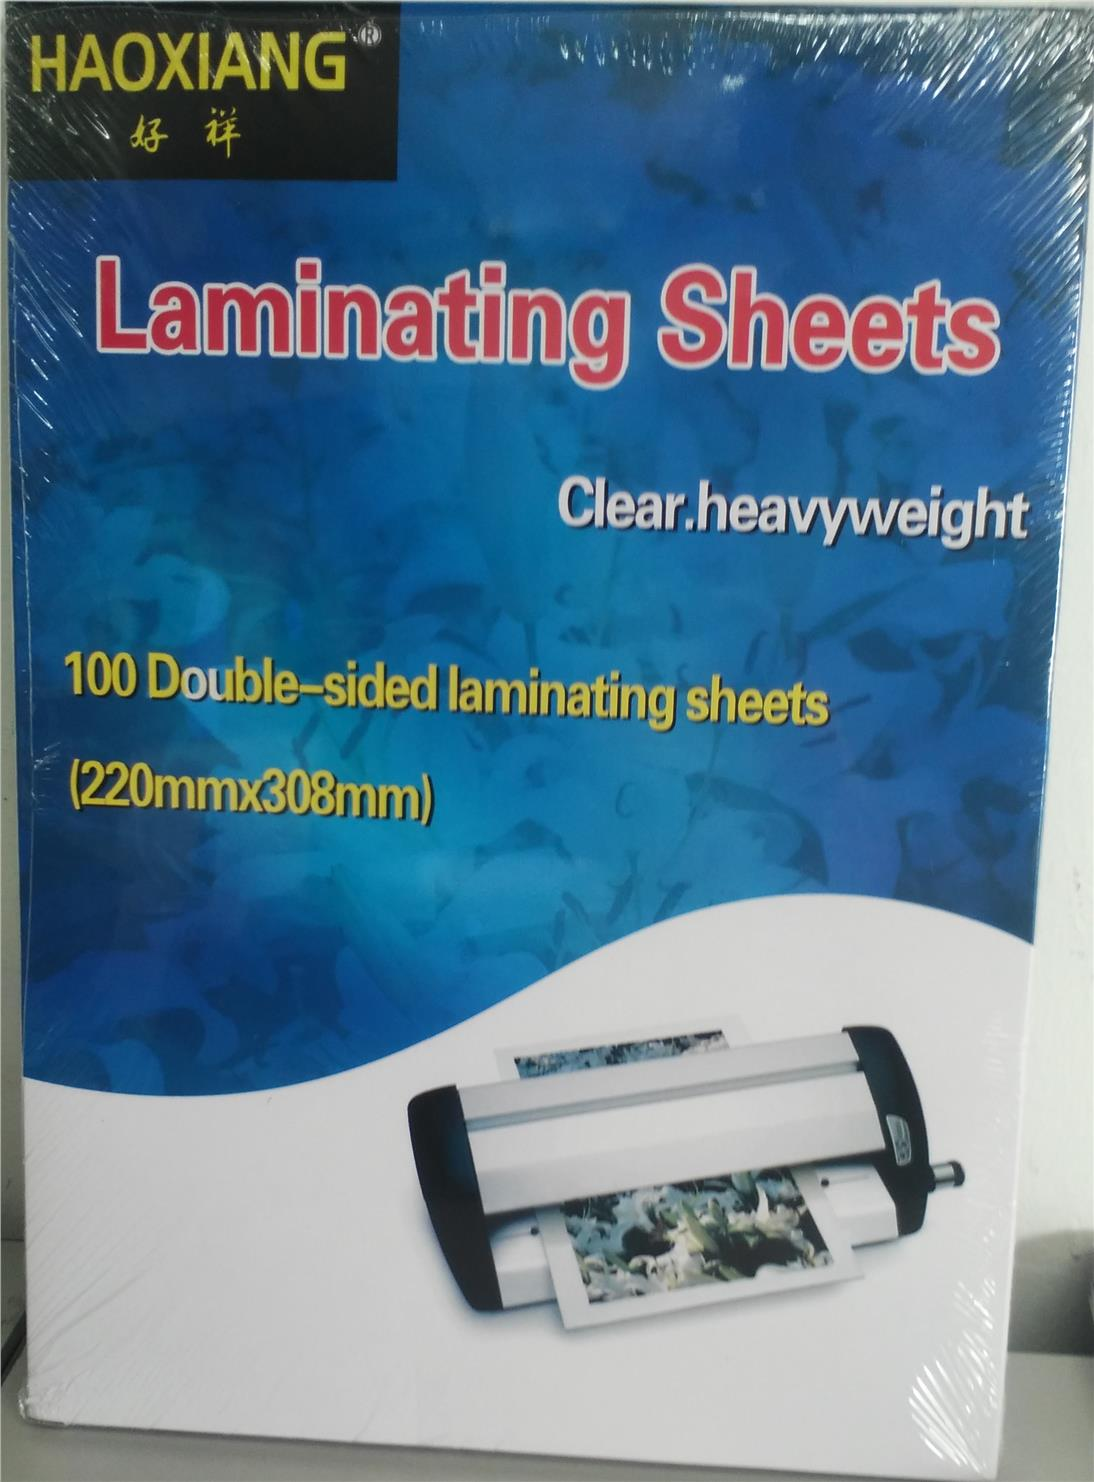 Laminate / Laminating / Laminator Machine A3 Size CLA302